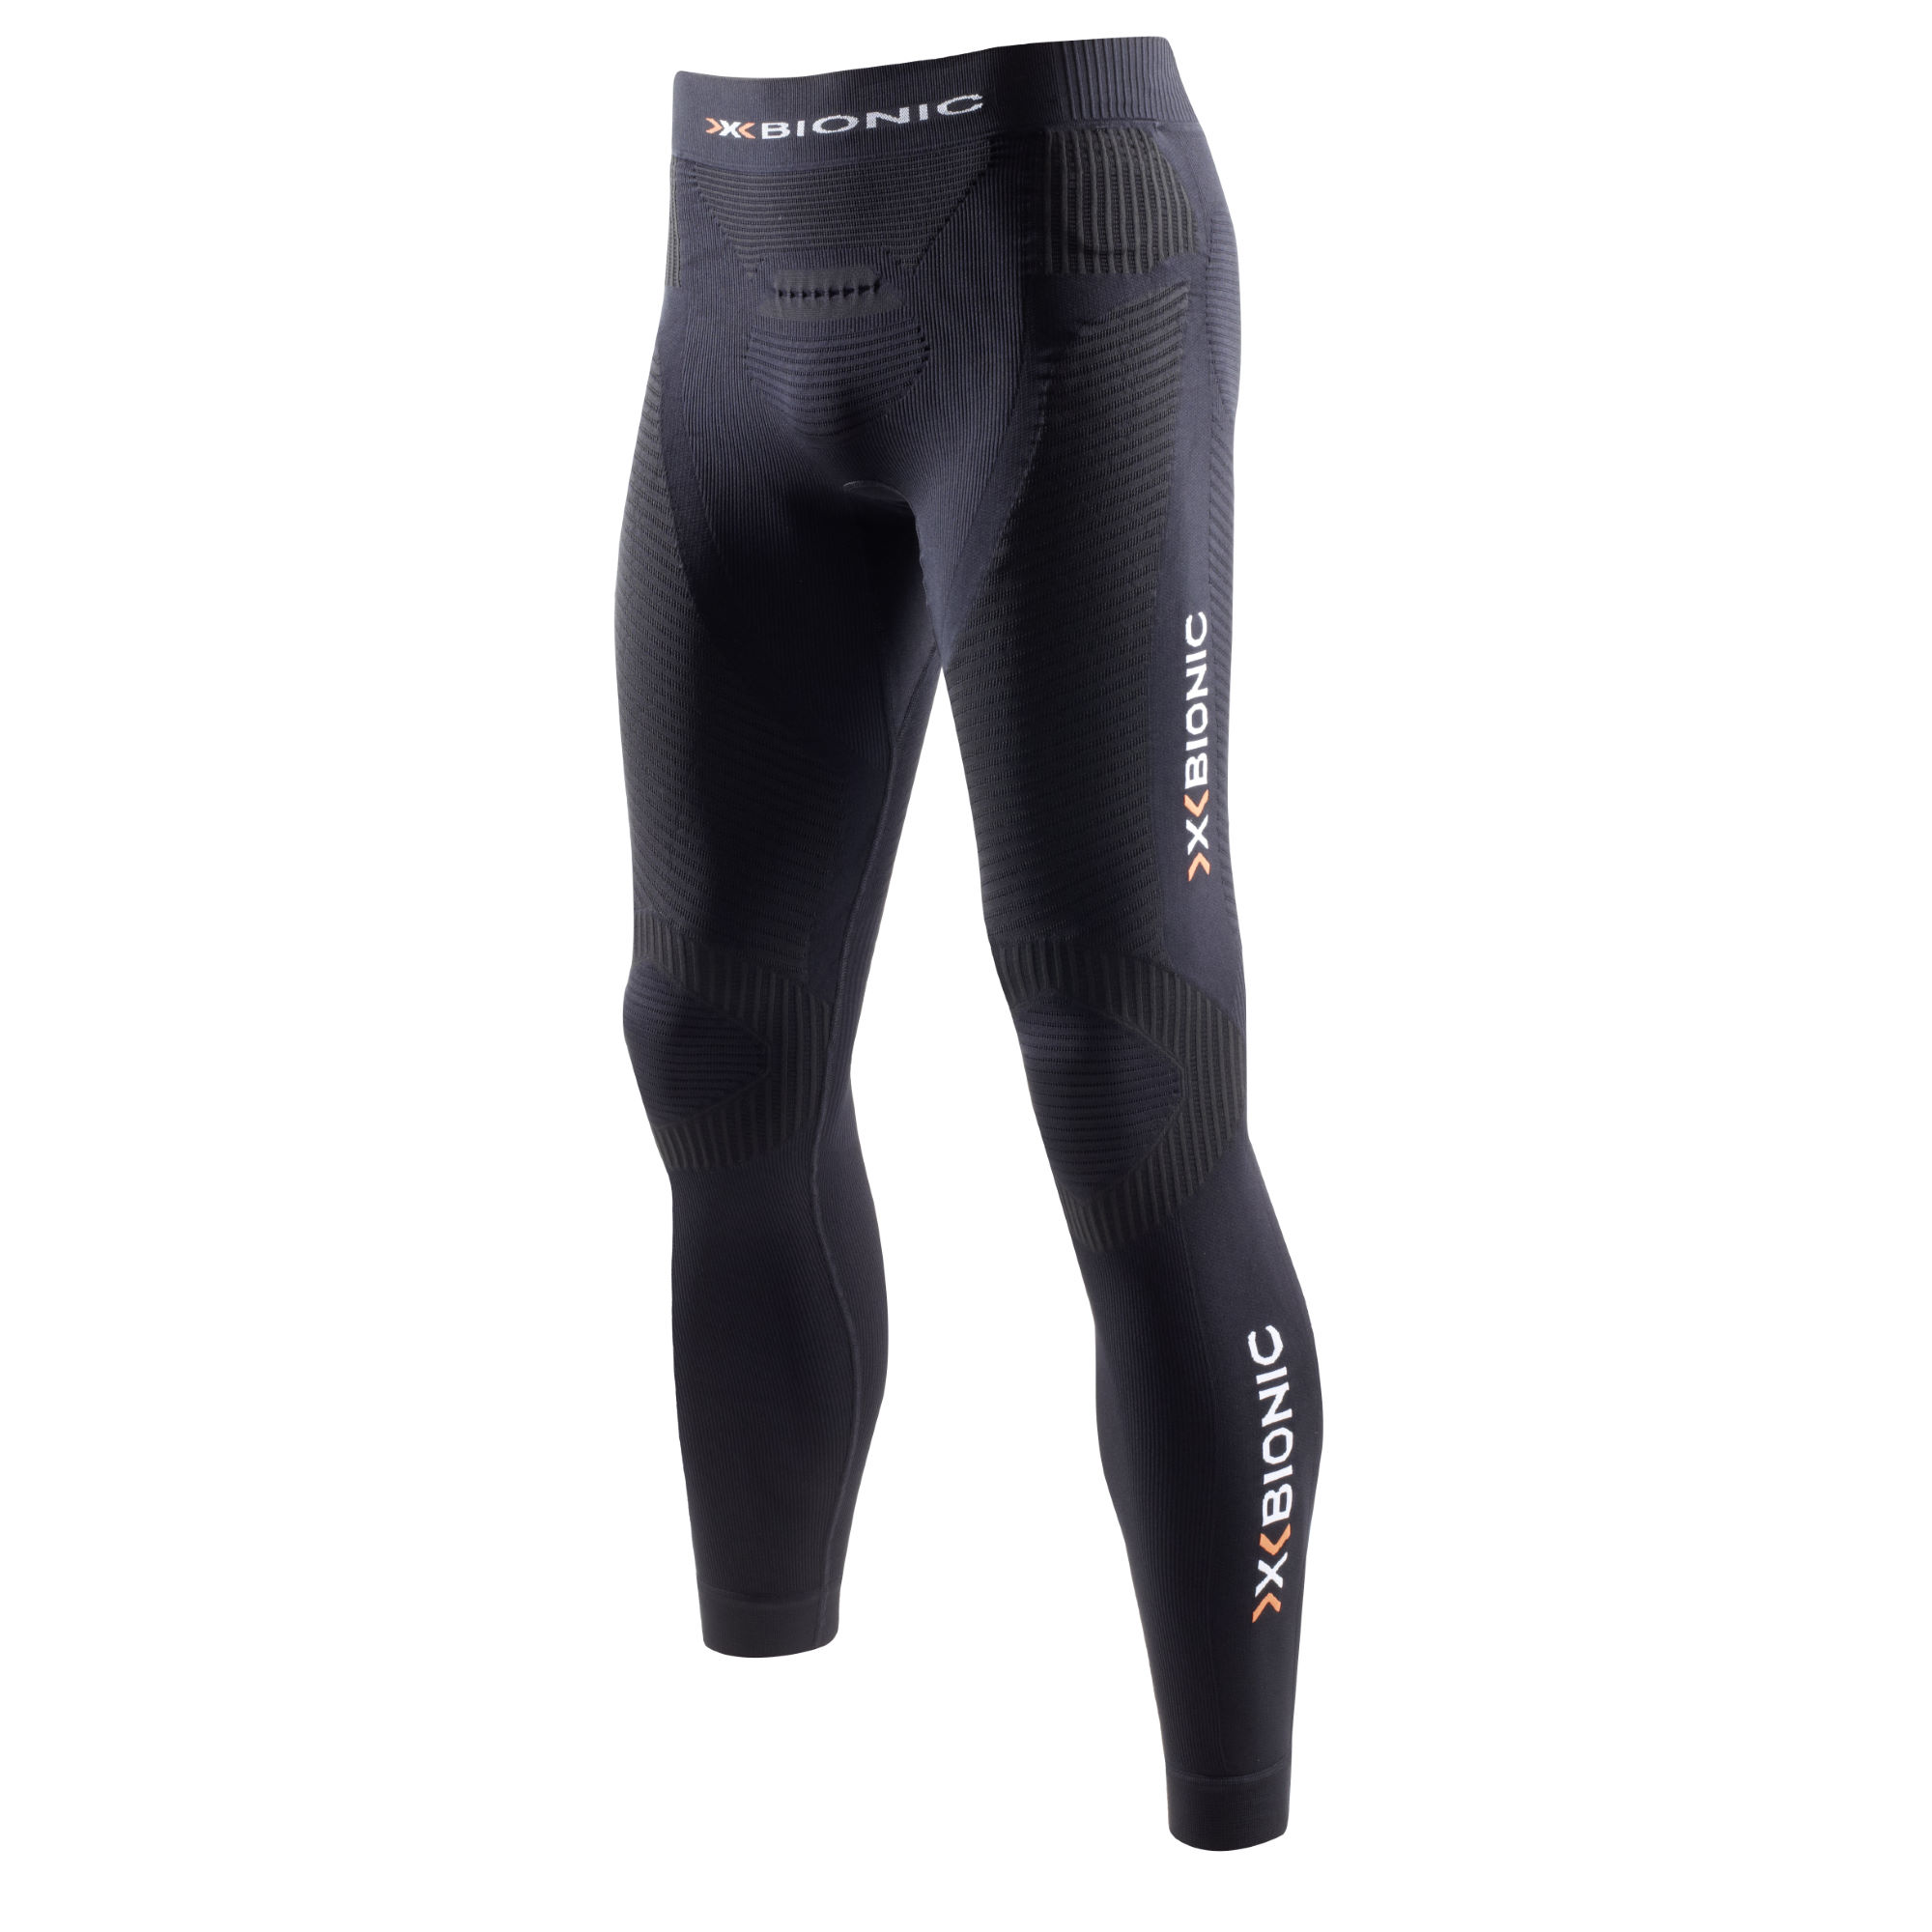 Free shipping BOTH ways on running tights, from our vast selection of styles. Fast delivery, and 24/7/ real-person service with a smile. Click or call